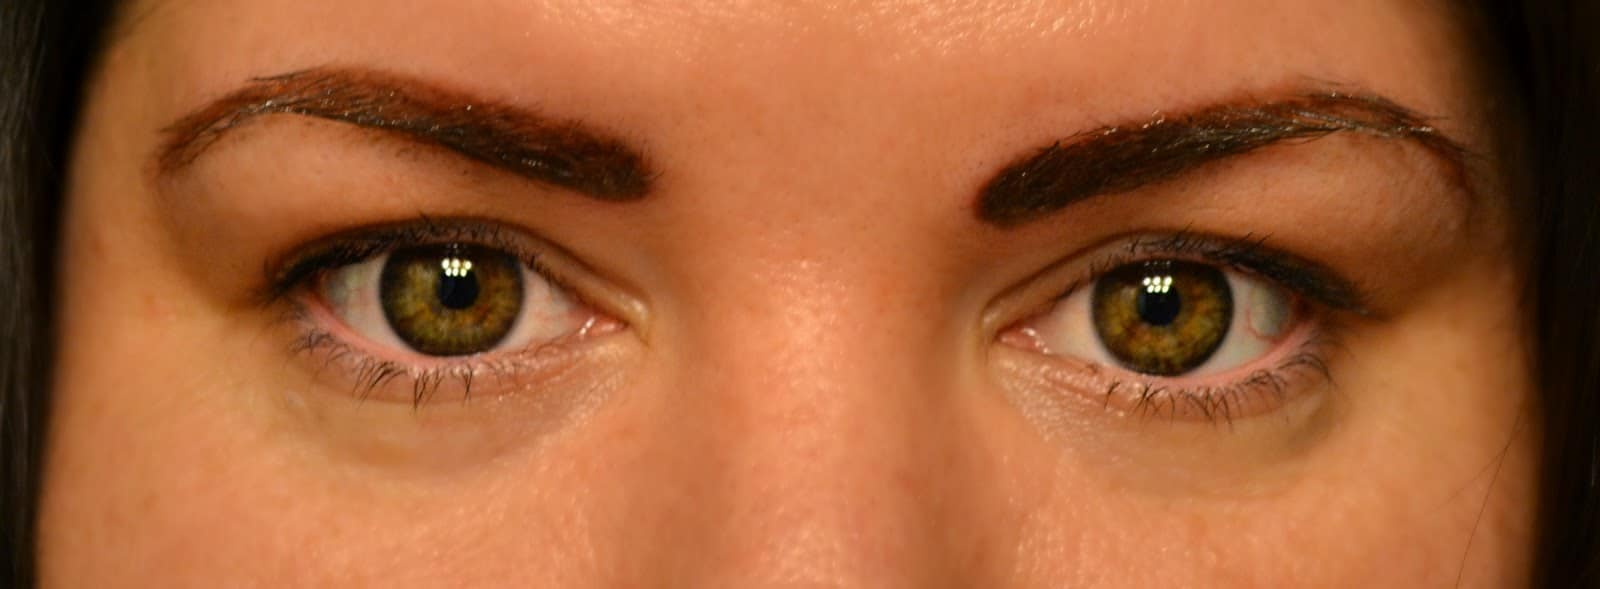 Makeup monday permanent makeup before and after as the bunny hops